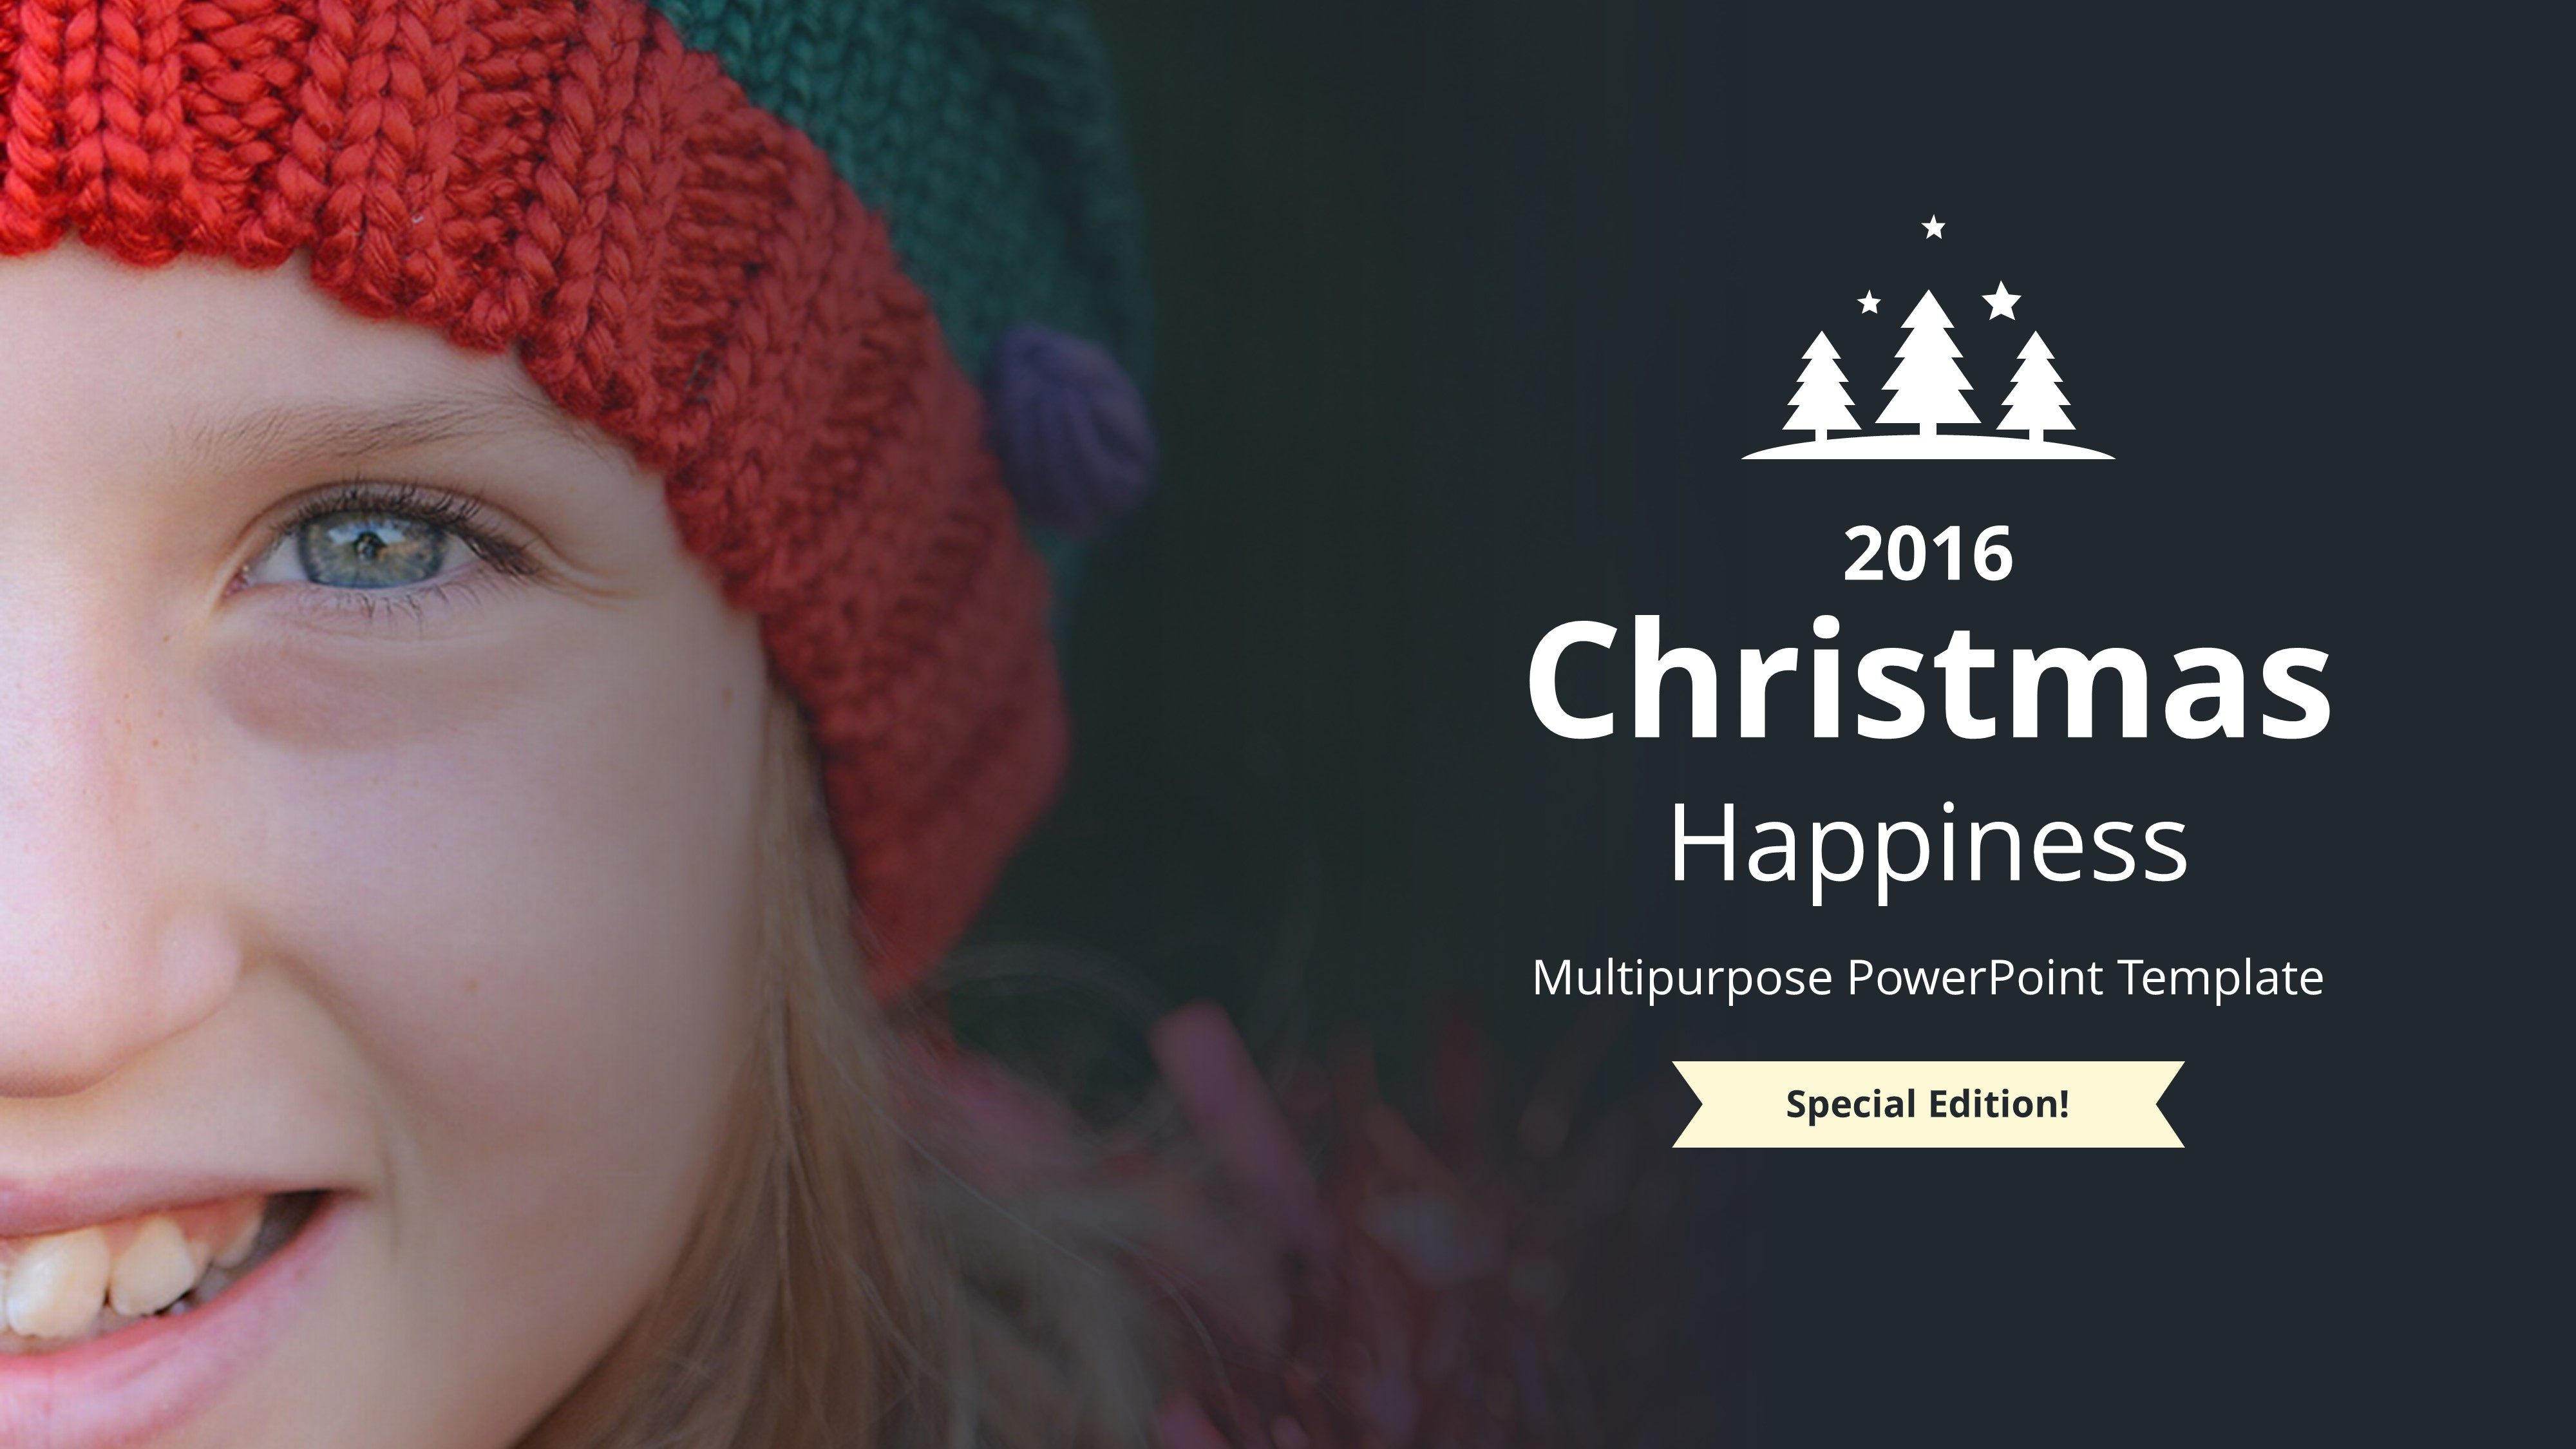 Christmas Happiness PowerPoint Template by BrandEarth | GraphicRiver